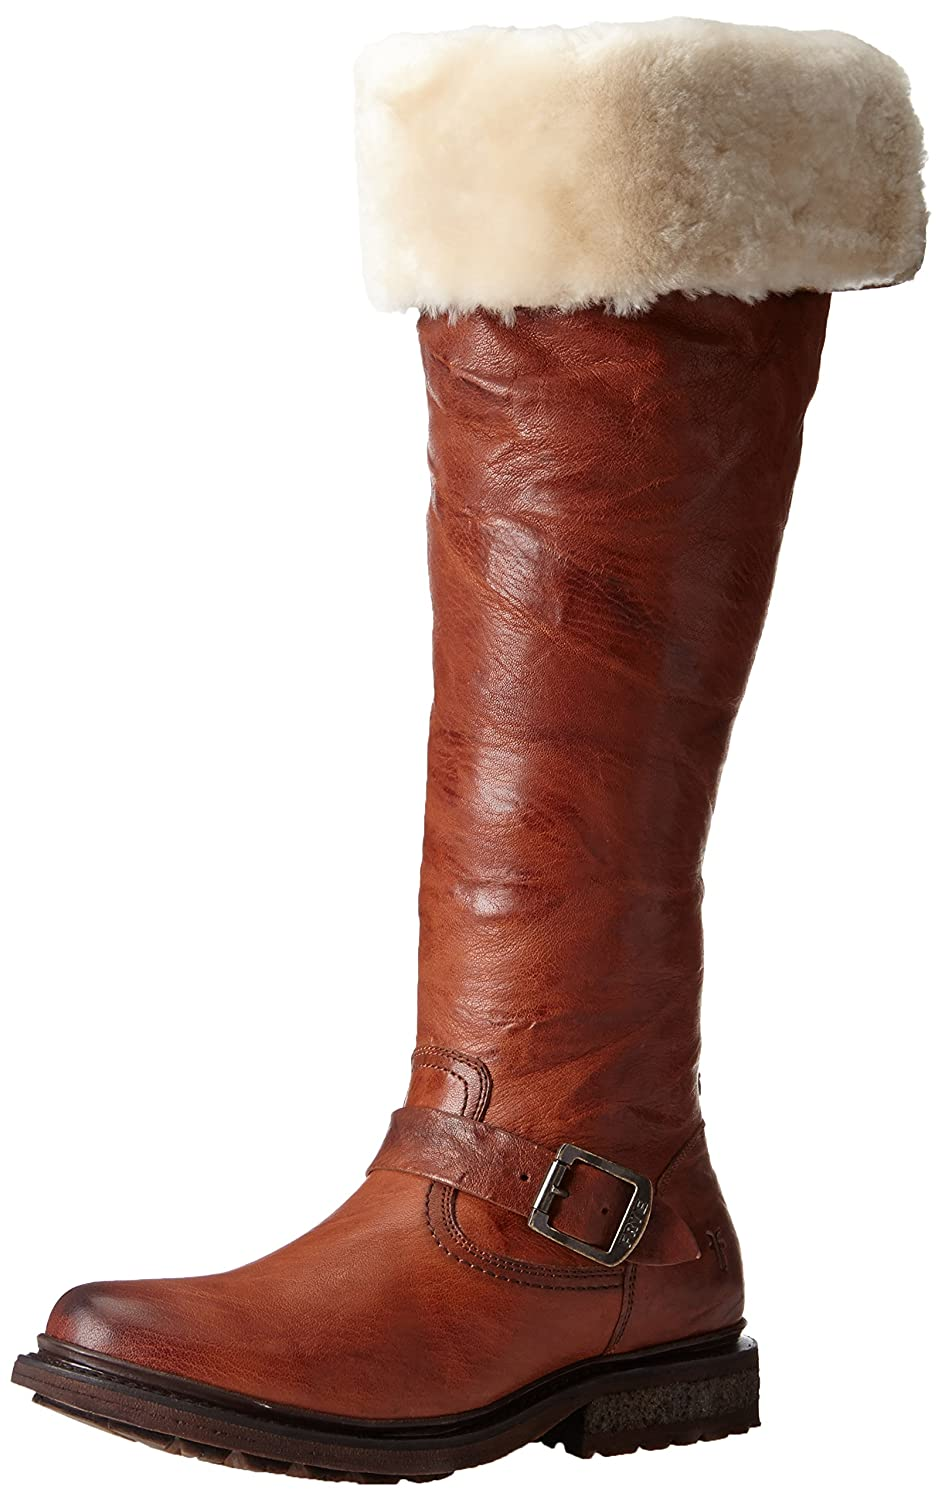 eaaf5535333 Details about FRYE Women s Valerie Shearling Over-The-Knee Riding Boot